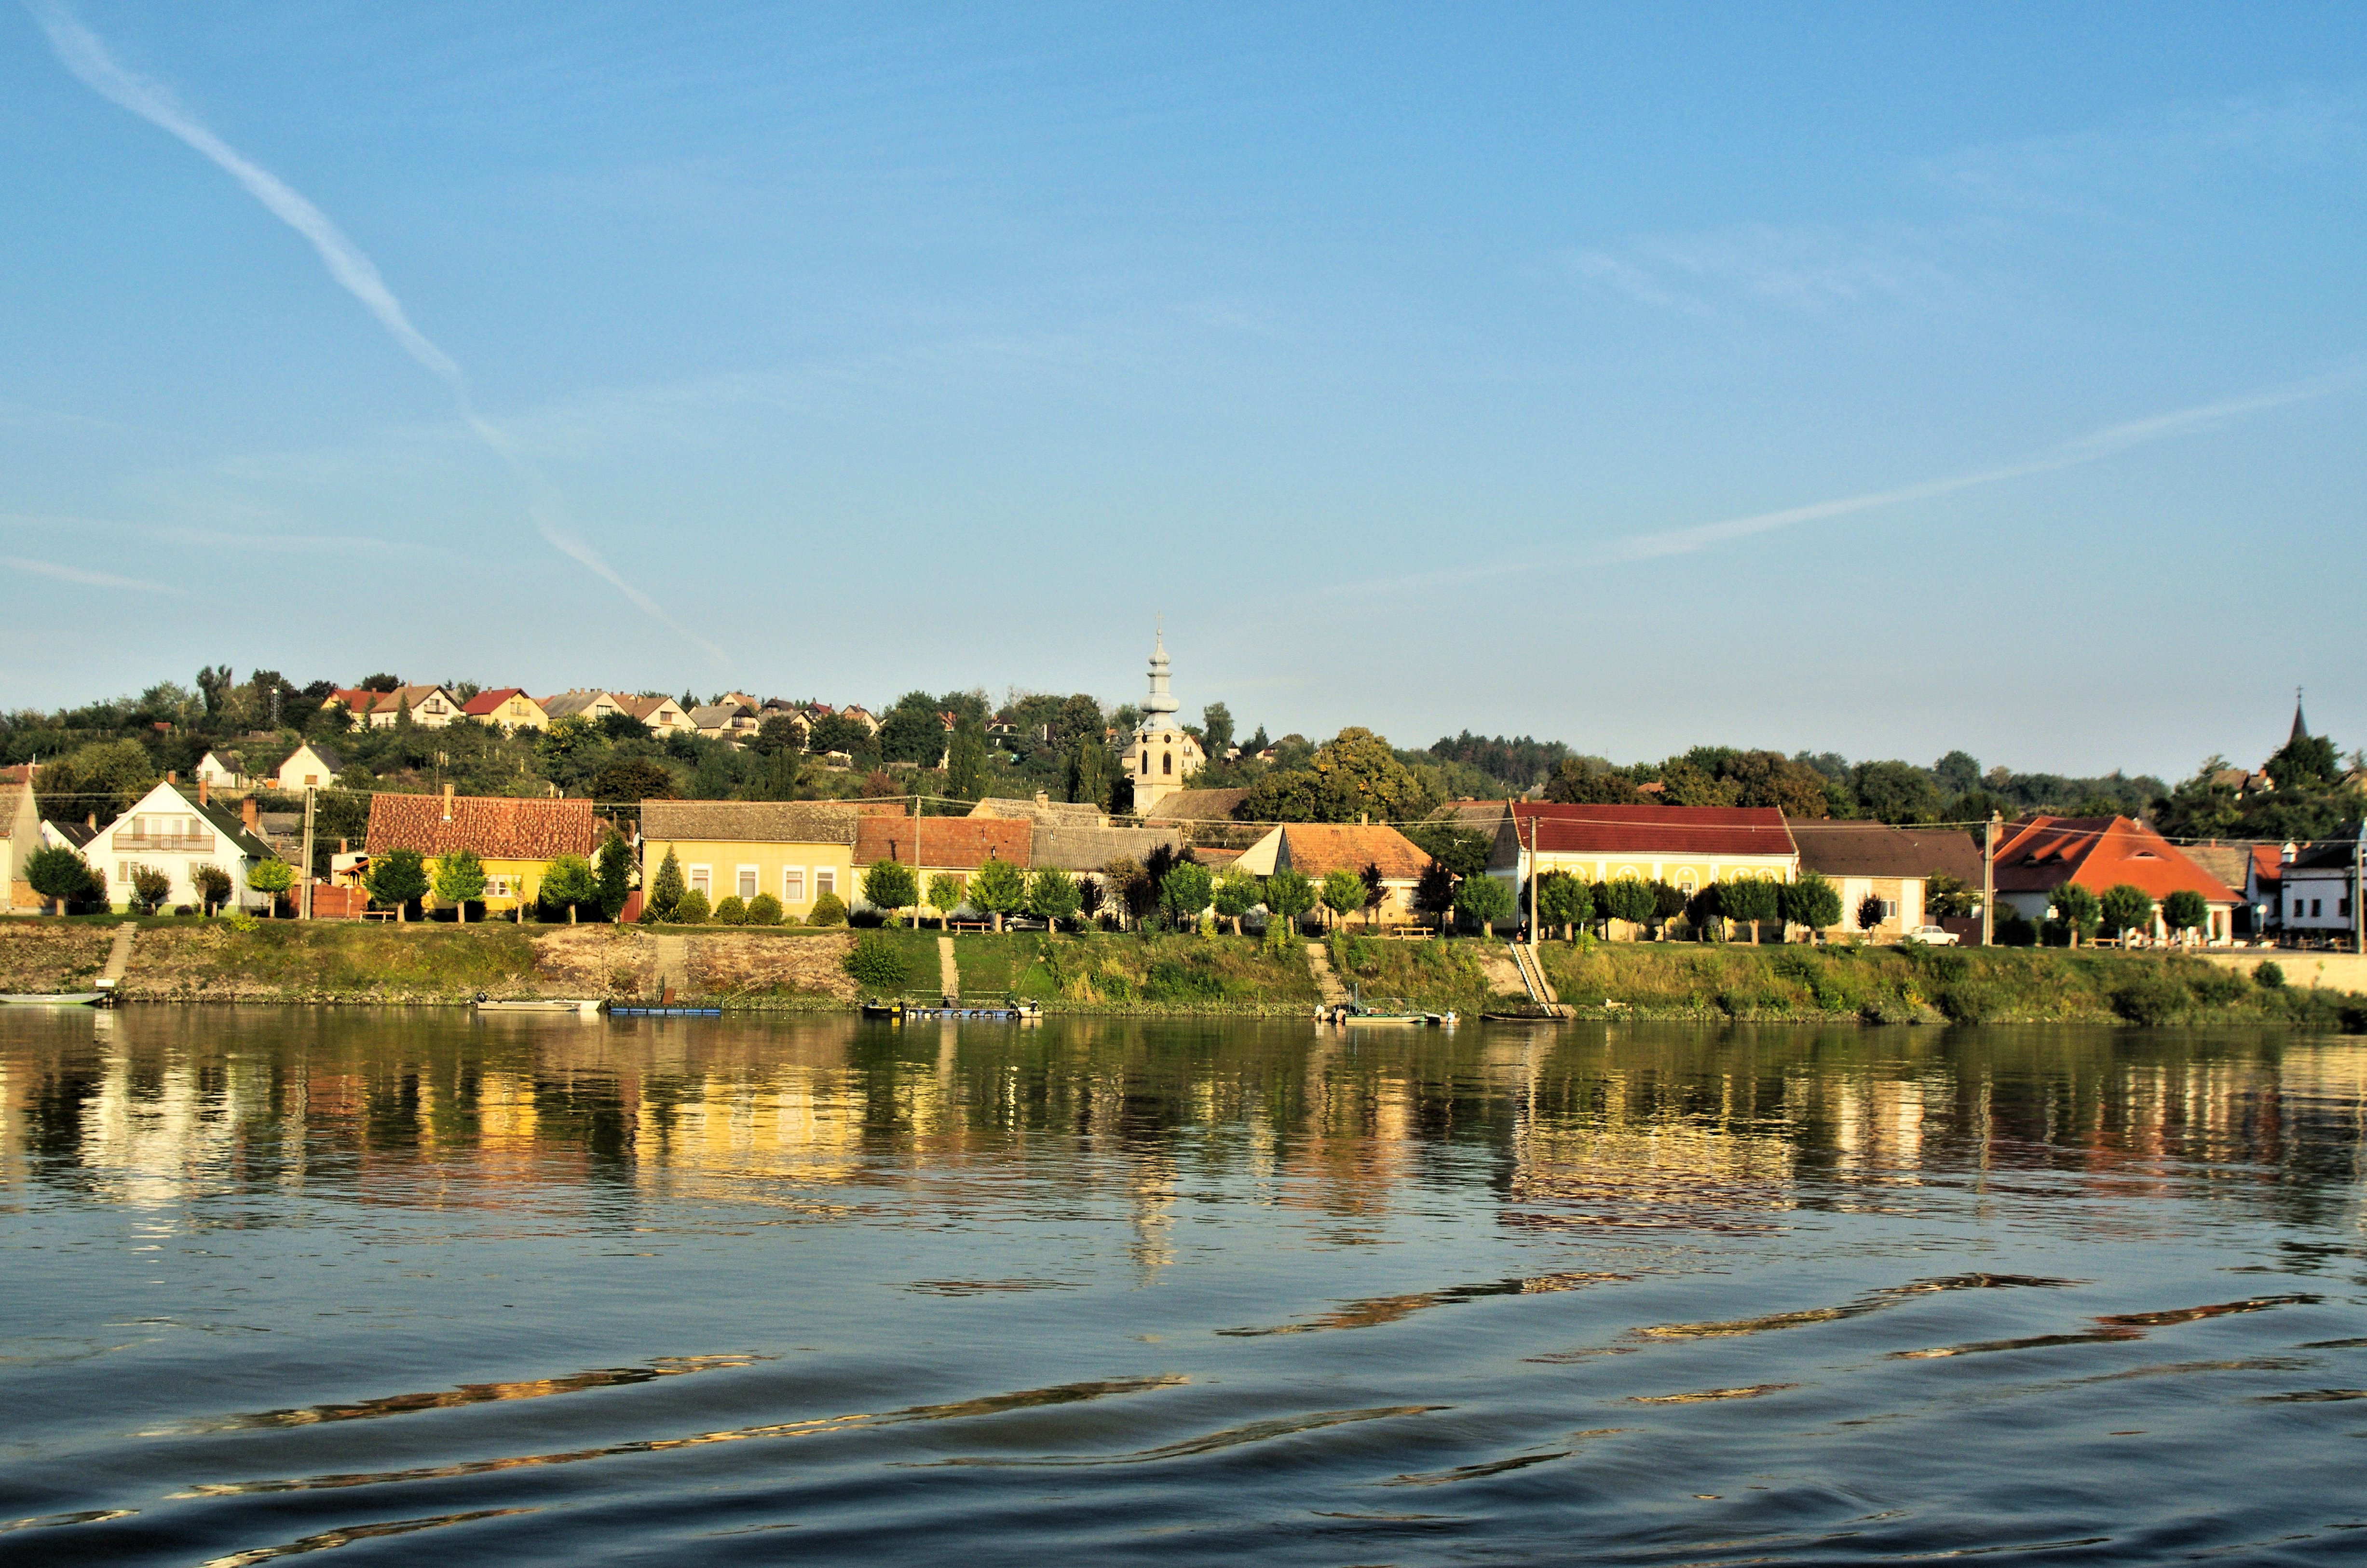 Morning on the Danube, near Mohács. Photo credit: Byron Howes